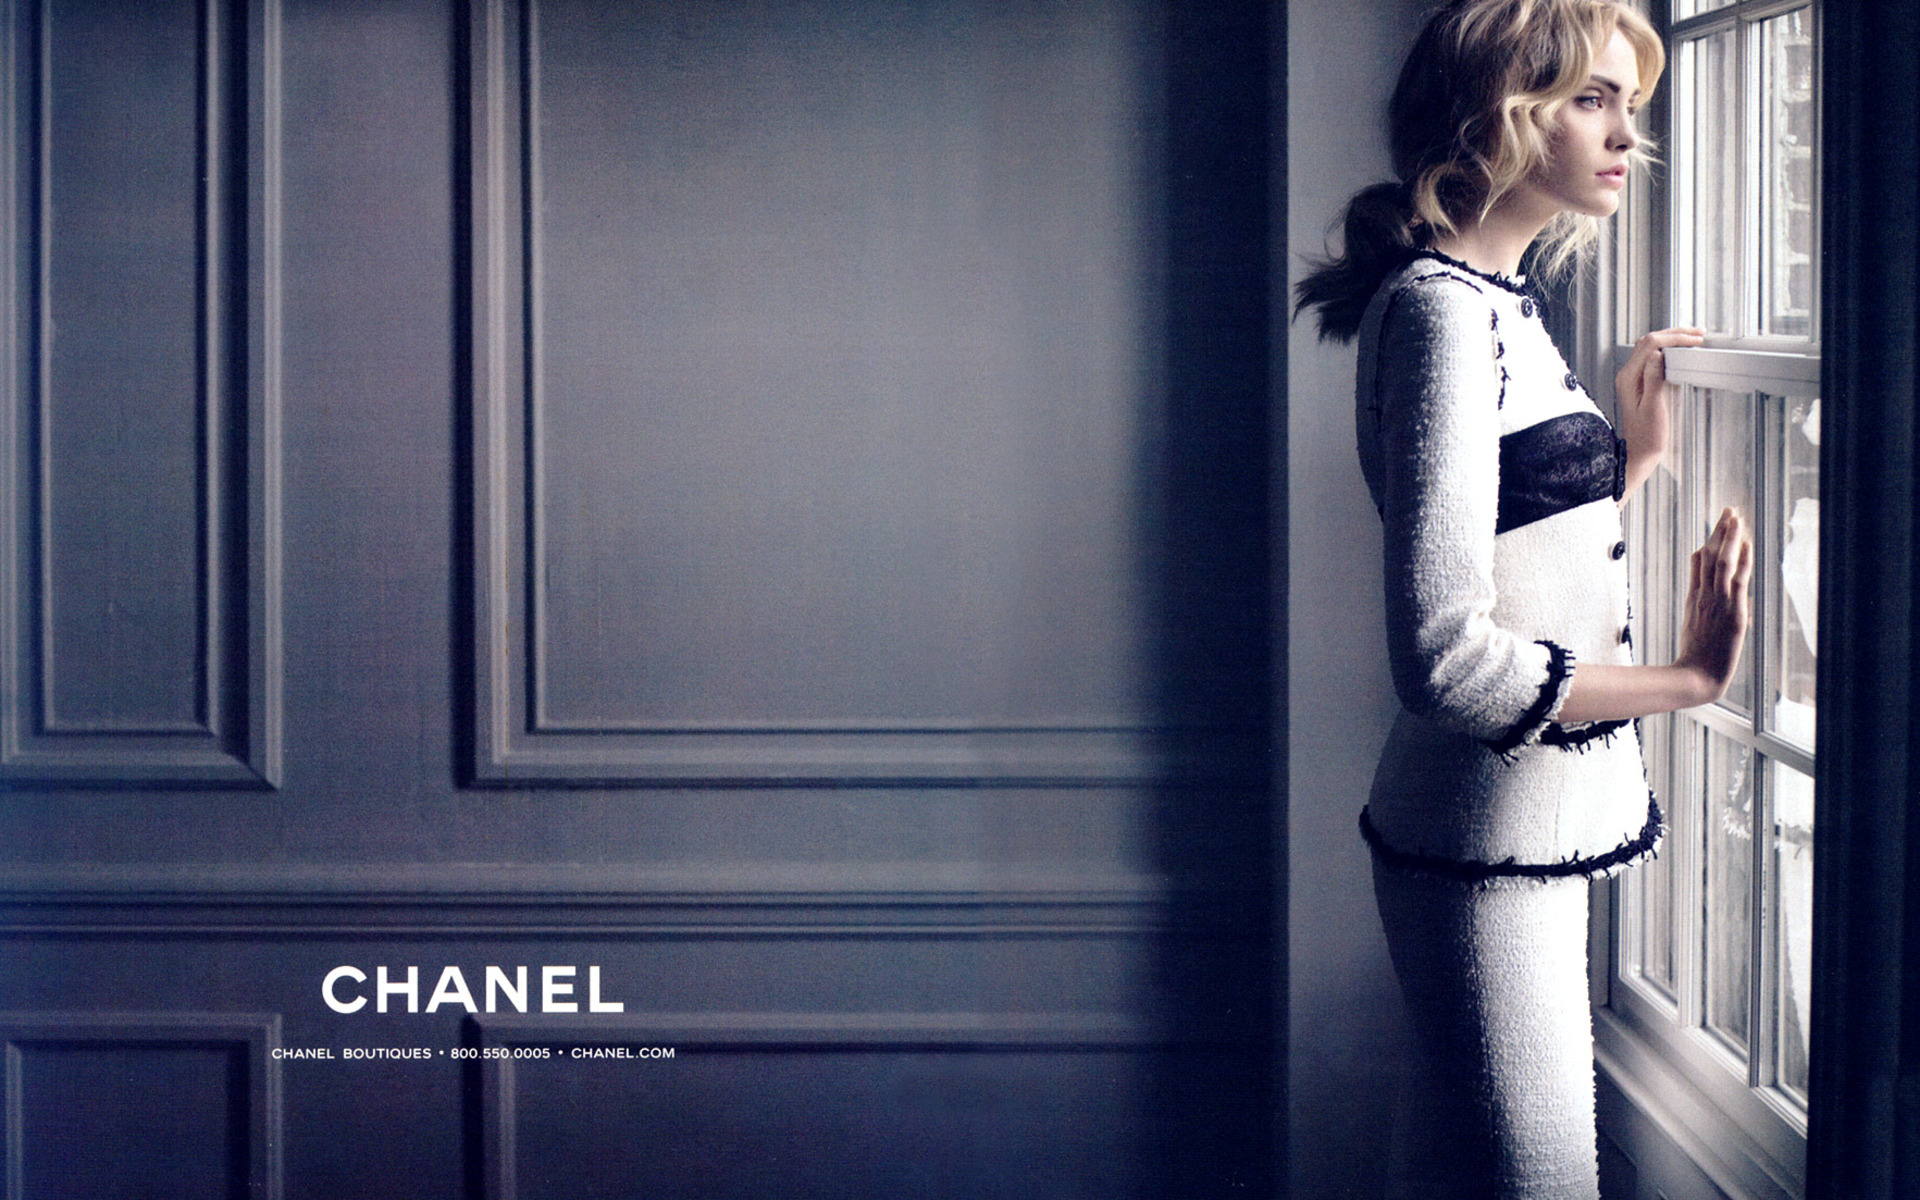 Chanel Wallpaper Desktop wallpaper wallpaper hd background desktop 1920x1200